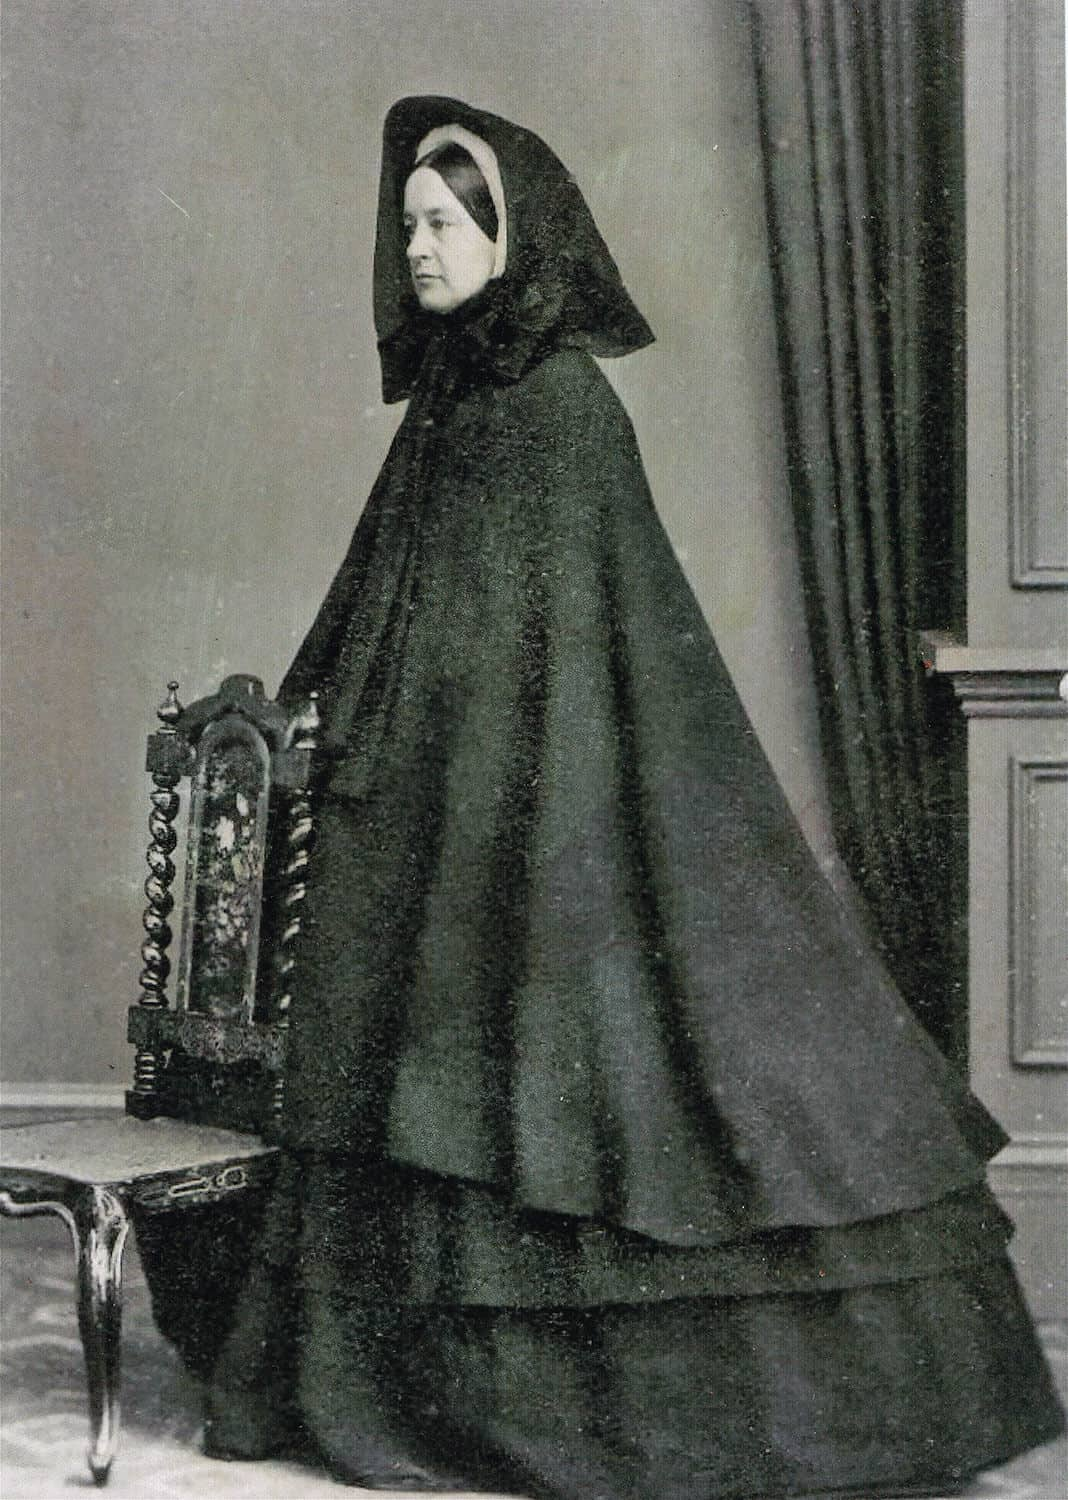 Dress of the widow, 19th century | Heritage Center